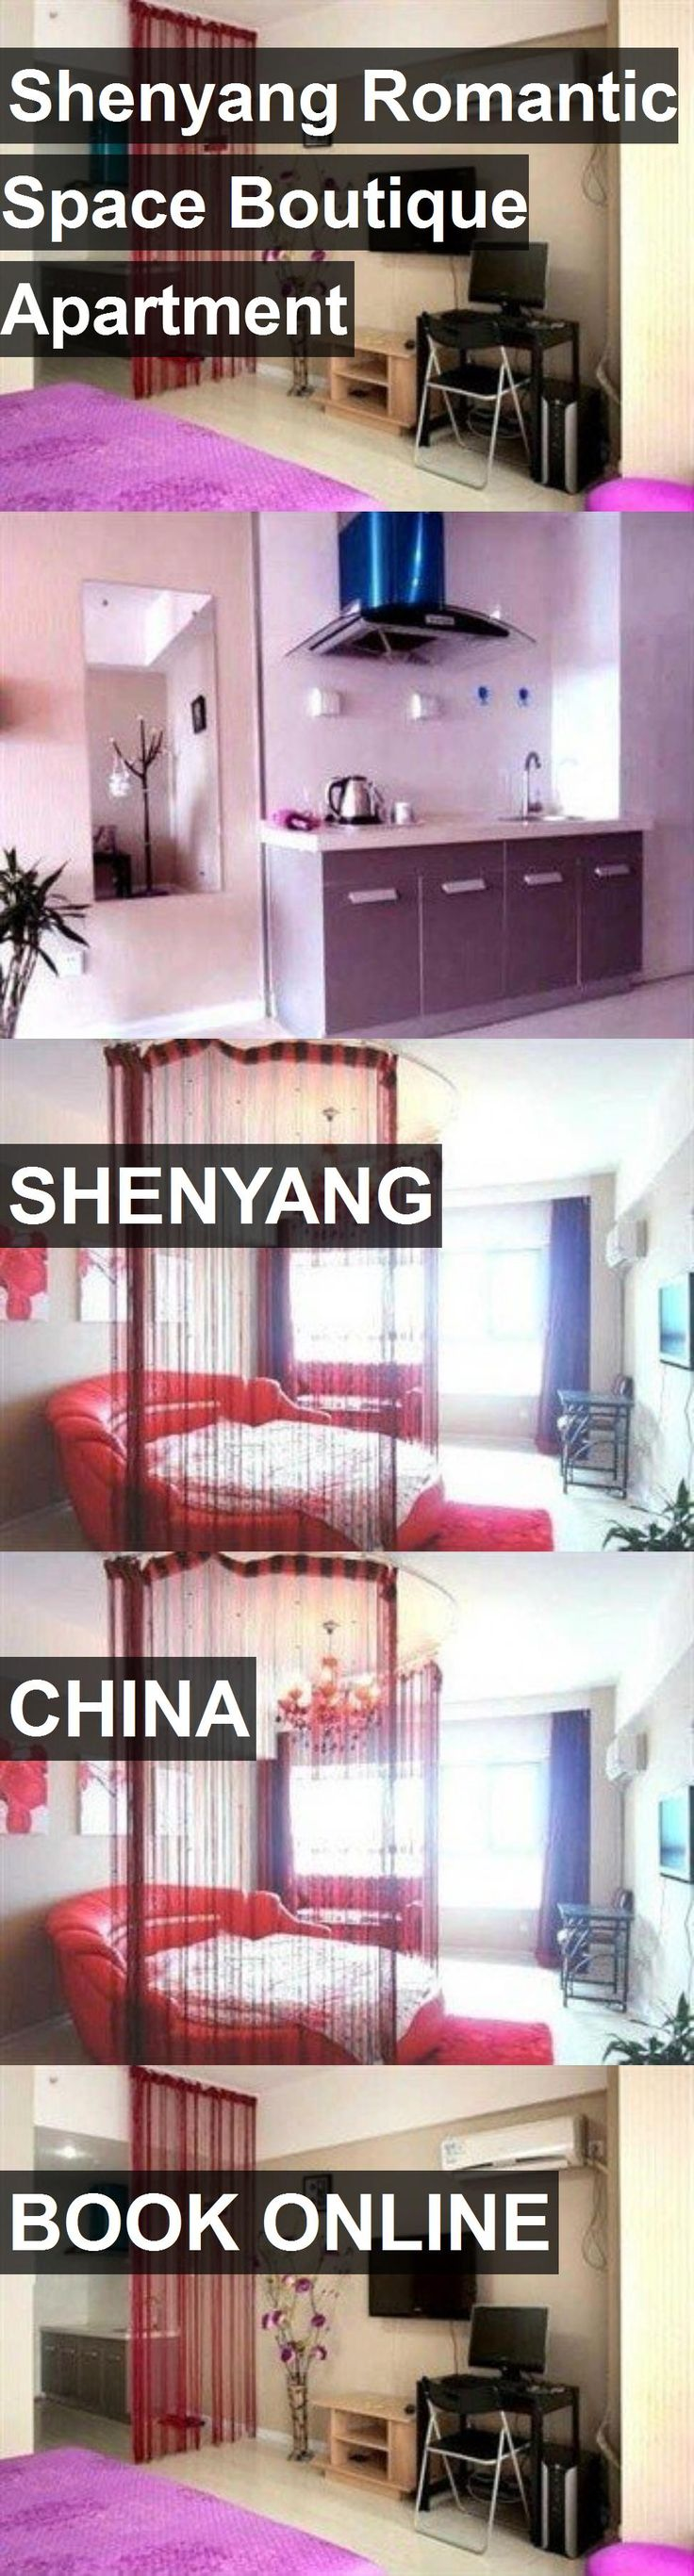 Shenyang Romantic Space Boutique Apartment in Shenyang, China. For more information, photos, reviews and best prices please follow the link. #China #Shenyang #travel #vacation #apartment